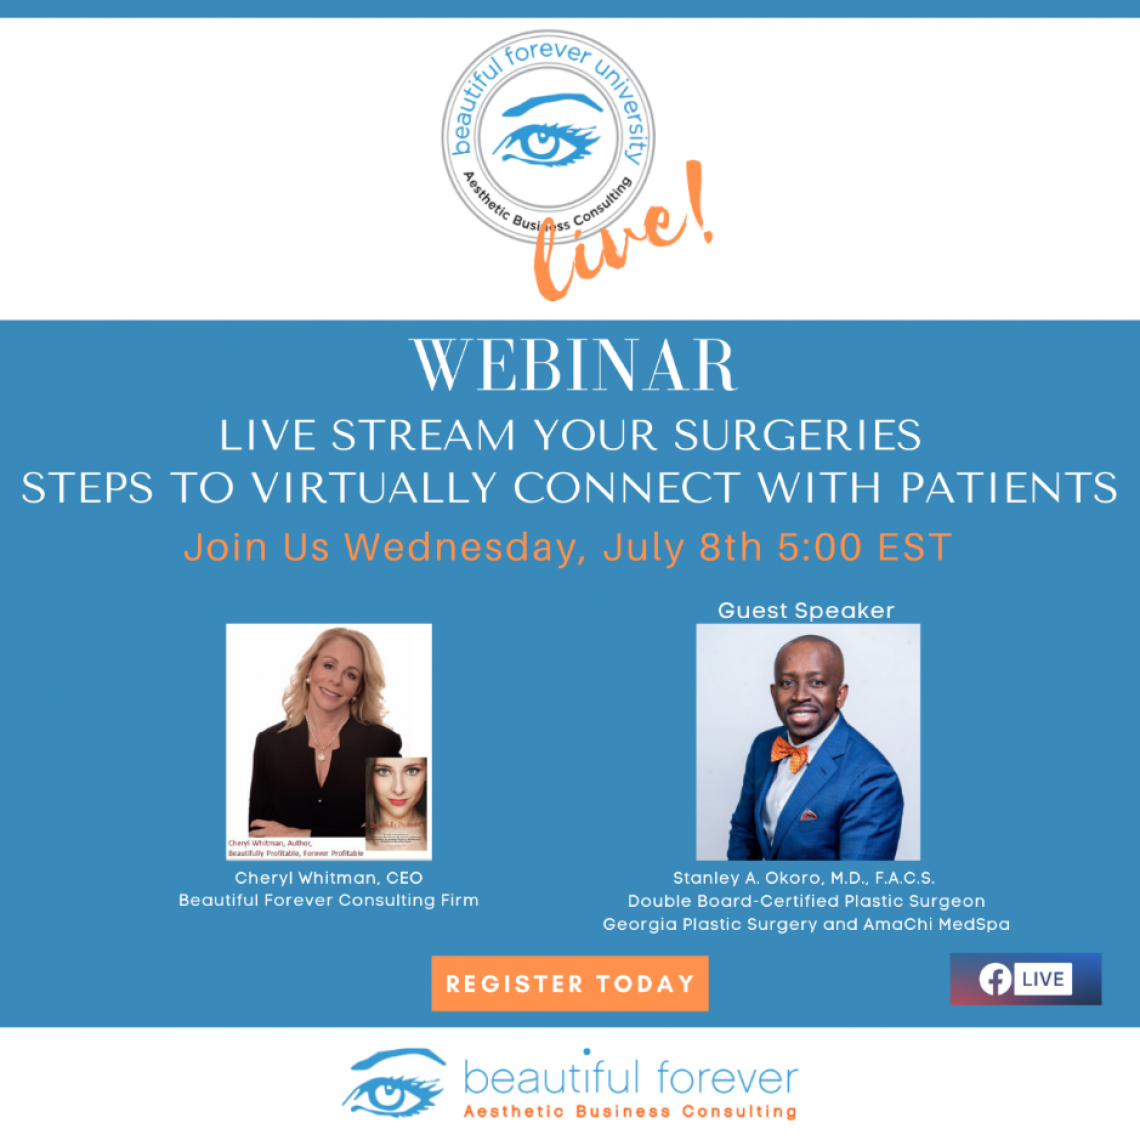 Live Stream Your Surgeries - Steps to Virtually Connect with Patients, Cheryl Whitman and Stanley Okoro, MD